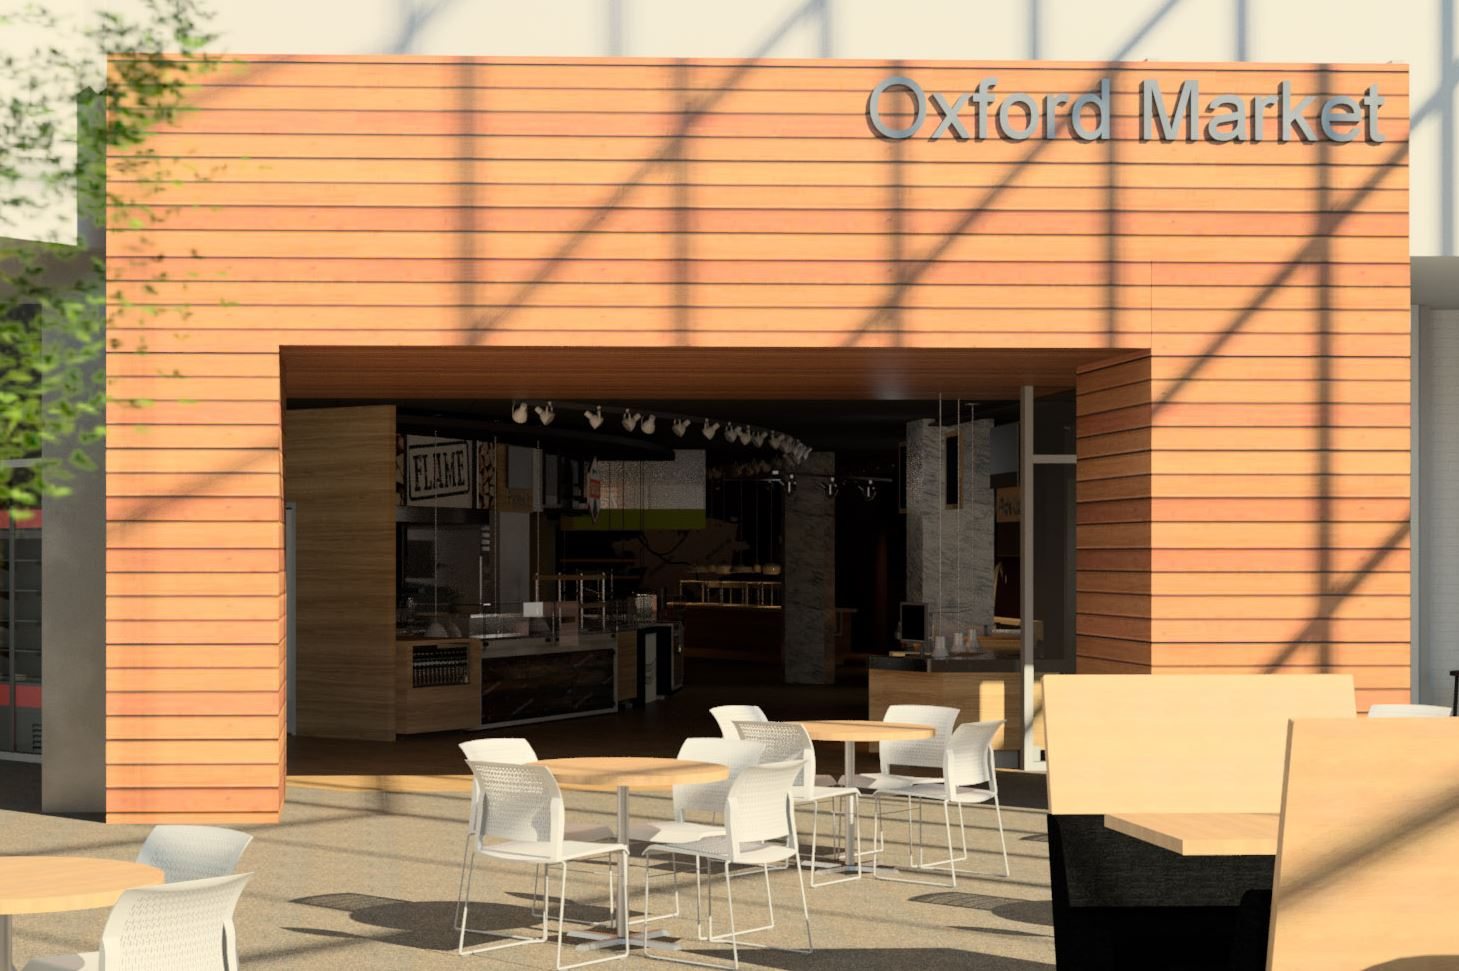 Entrance_Atrium (1).jpg The entrance atrium for Oxford Market opening in One Oxford Centre Downtown possibly next month.